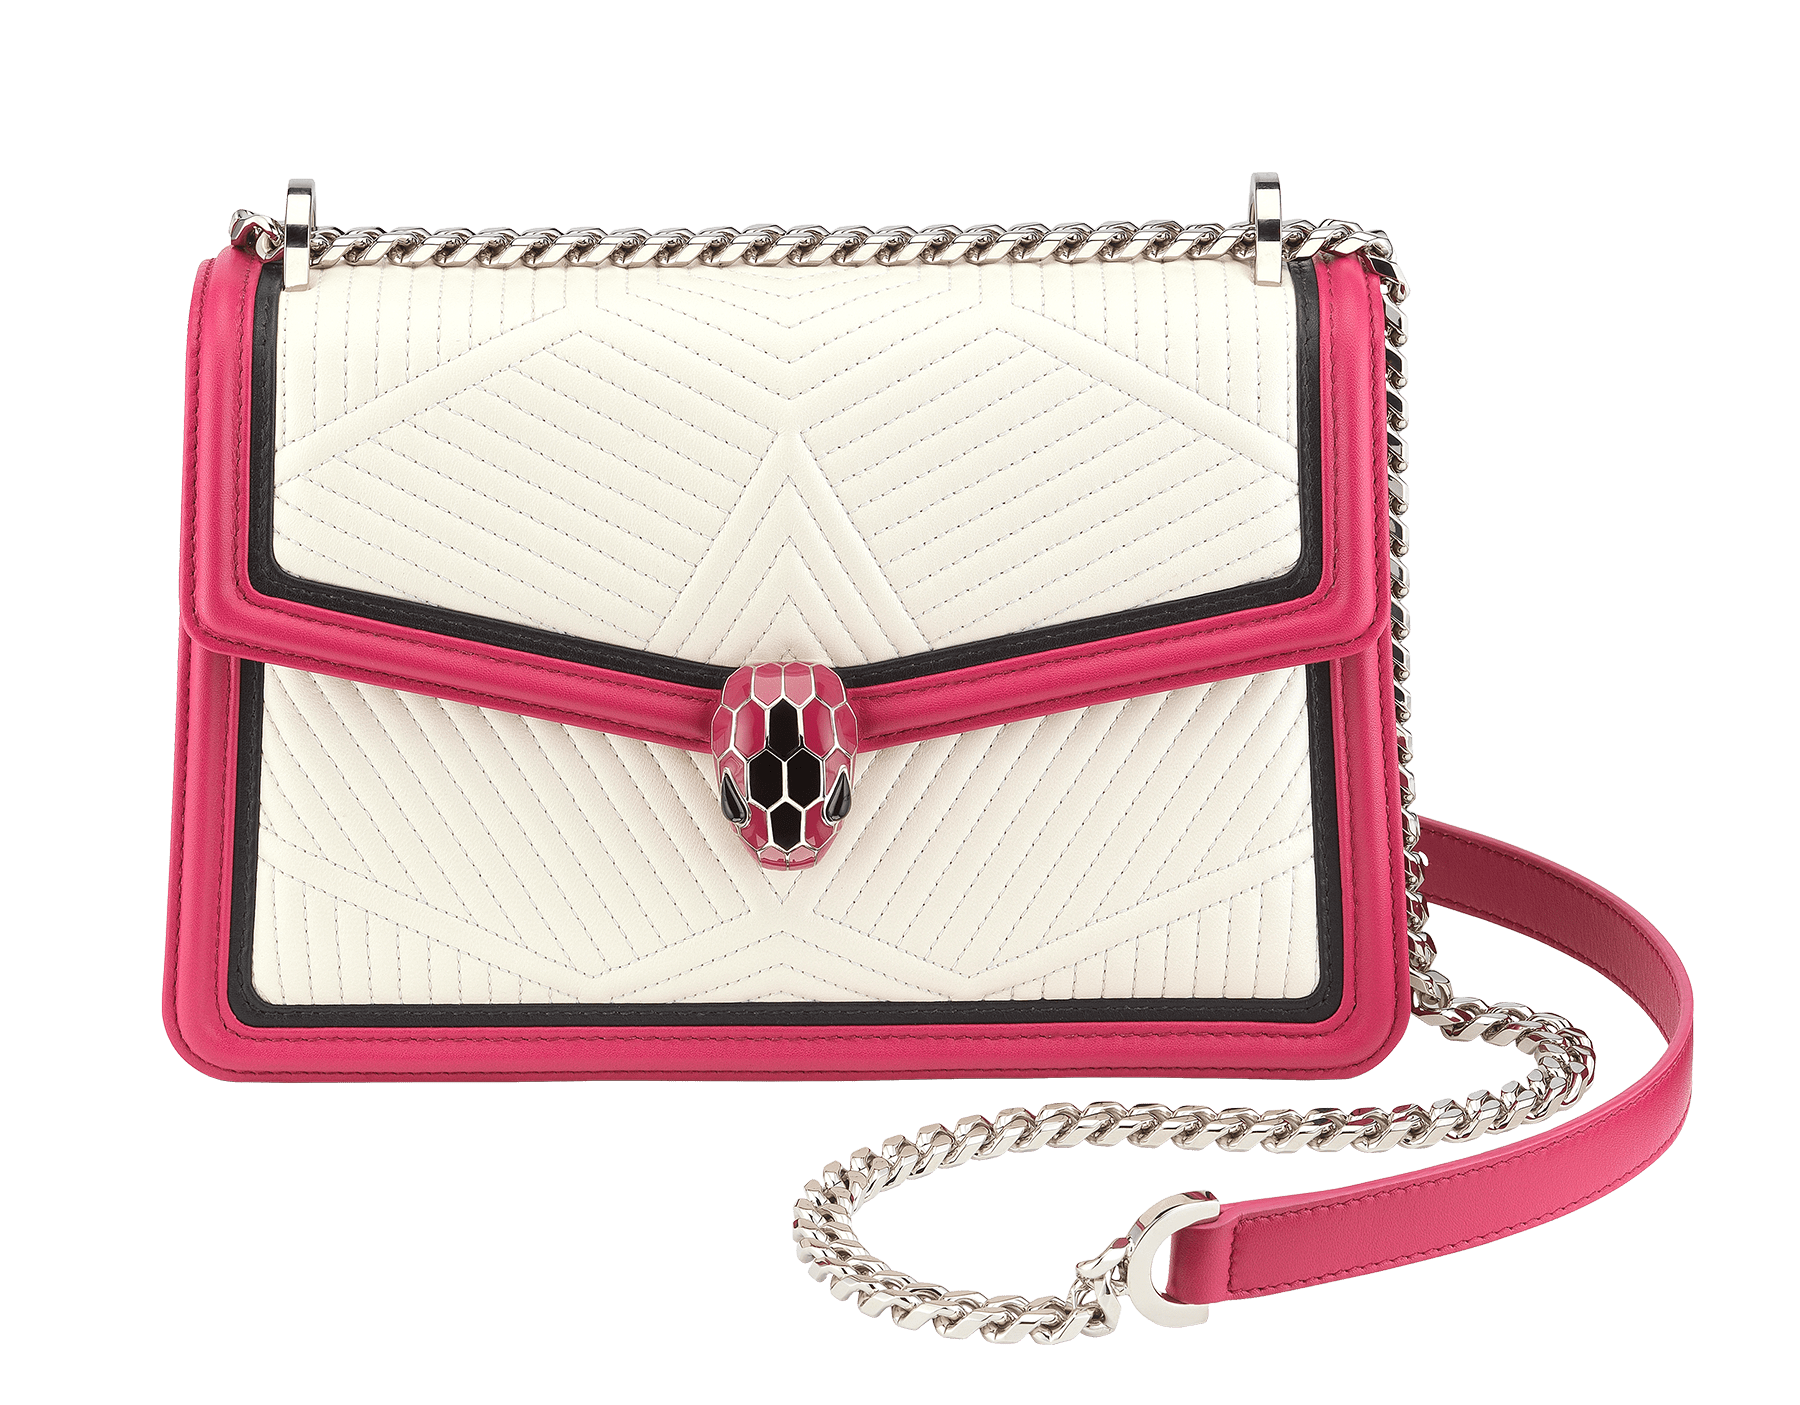 """Serpenti Diamond Blast"" shoulder bag in white agate quilted nappa leather body and black and jazzy tourmaline calf leather frames. Iconic snakehead closure in palladium plated brass enriched with black and jazzy tourmaline enamel and black onyx eyes. 287187 image 1"